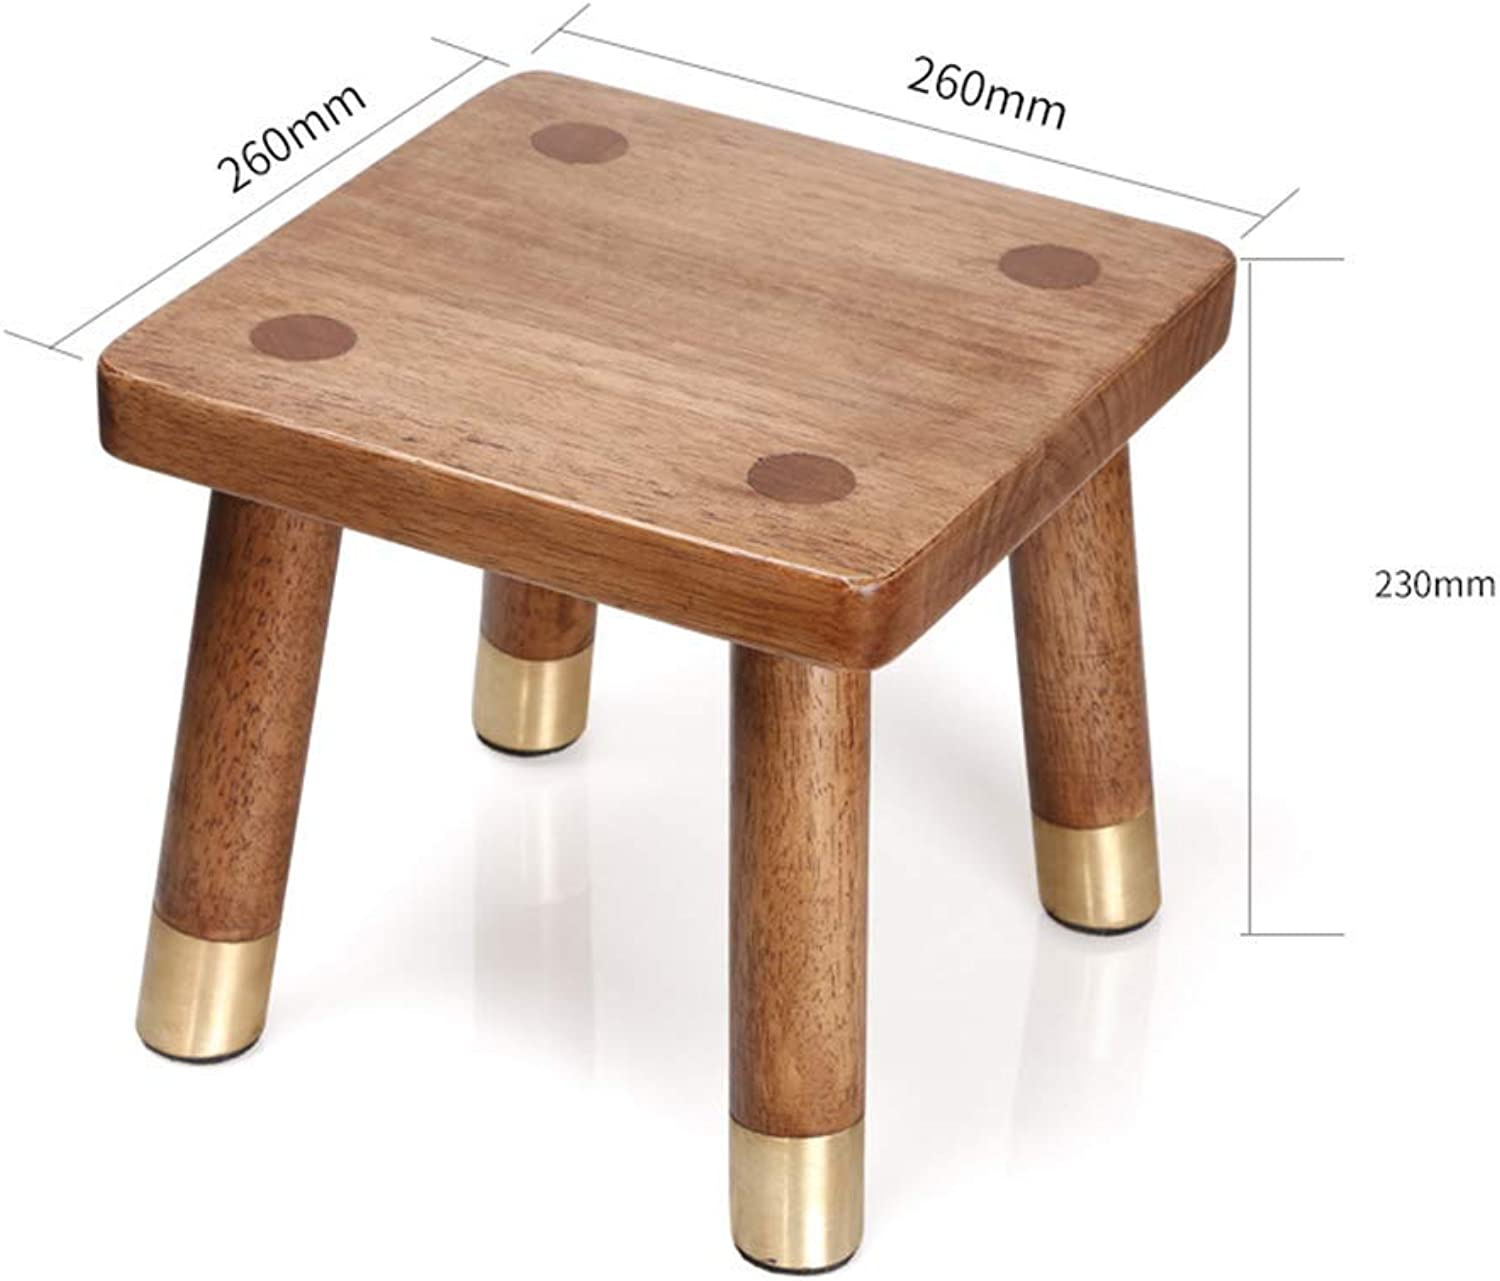 JZX Footstool, shoes Bench, Sofa Bench, shoes Bench, Solid Wood Home Multi-Function Stool